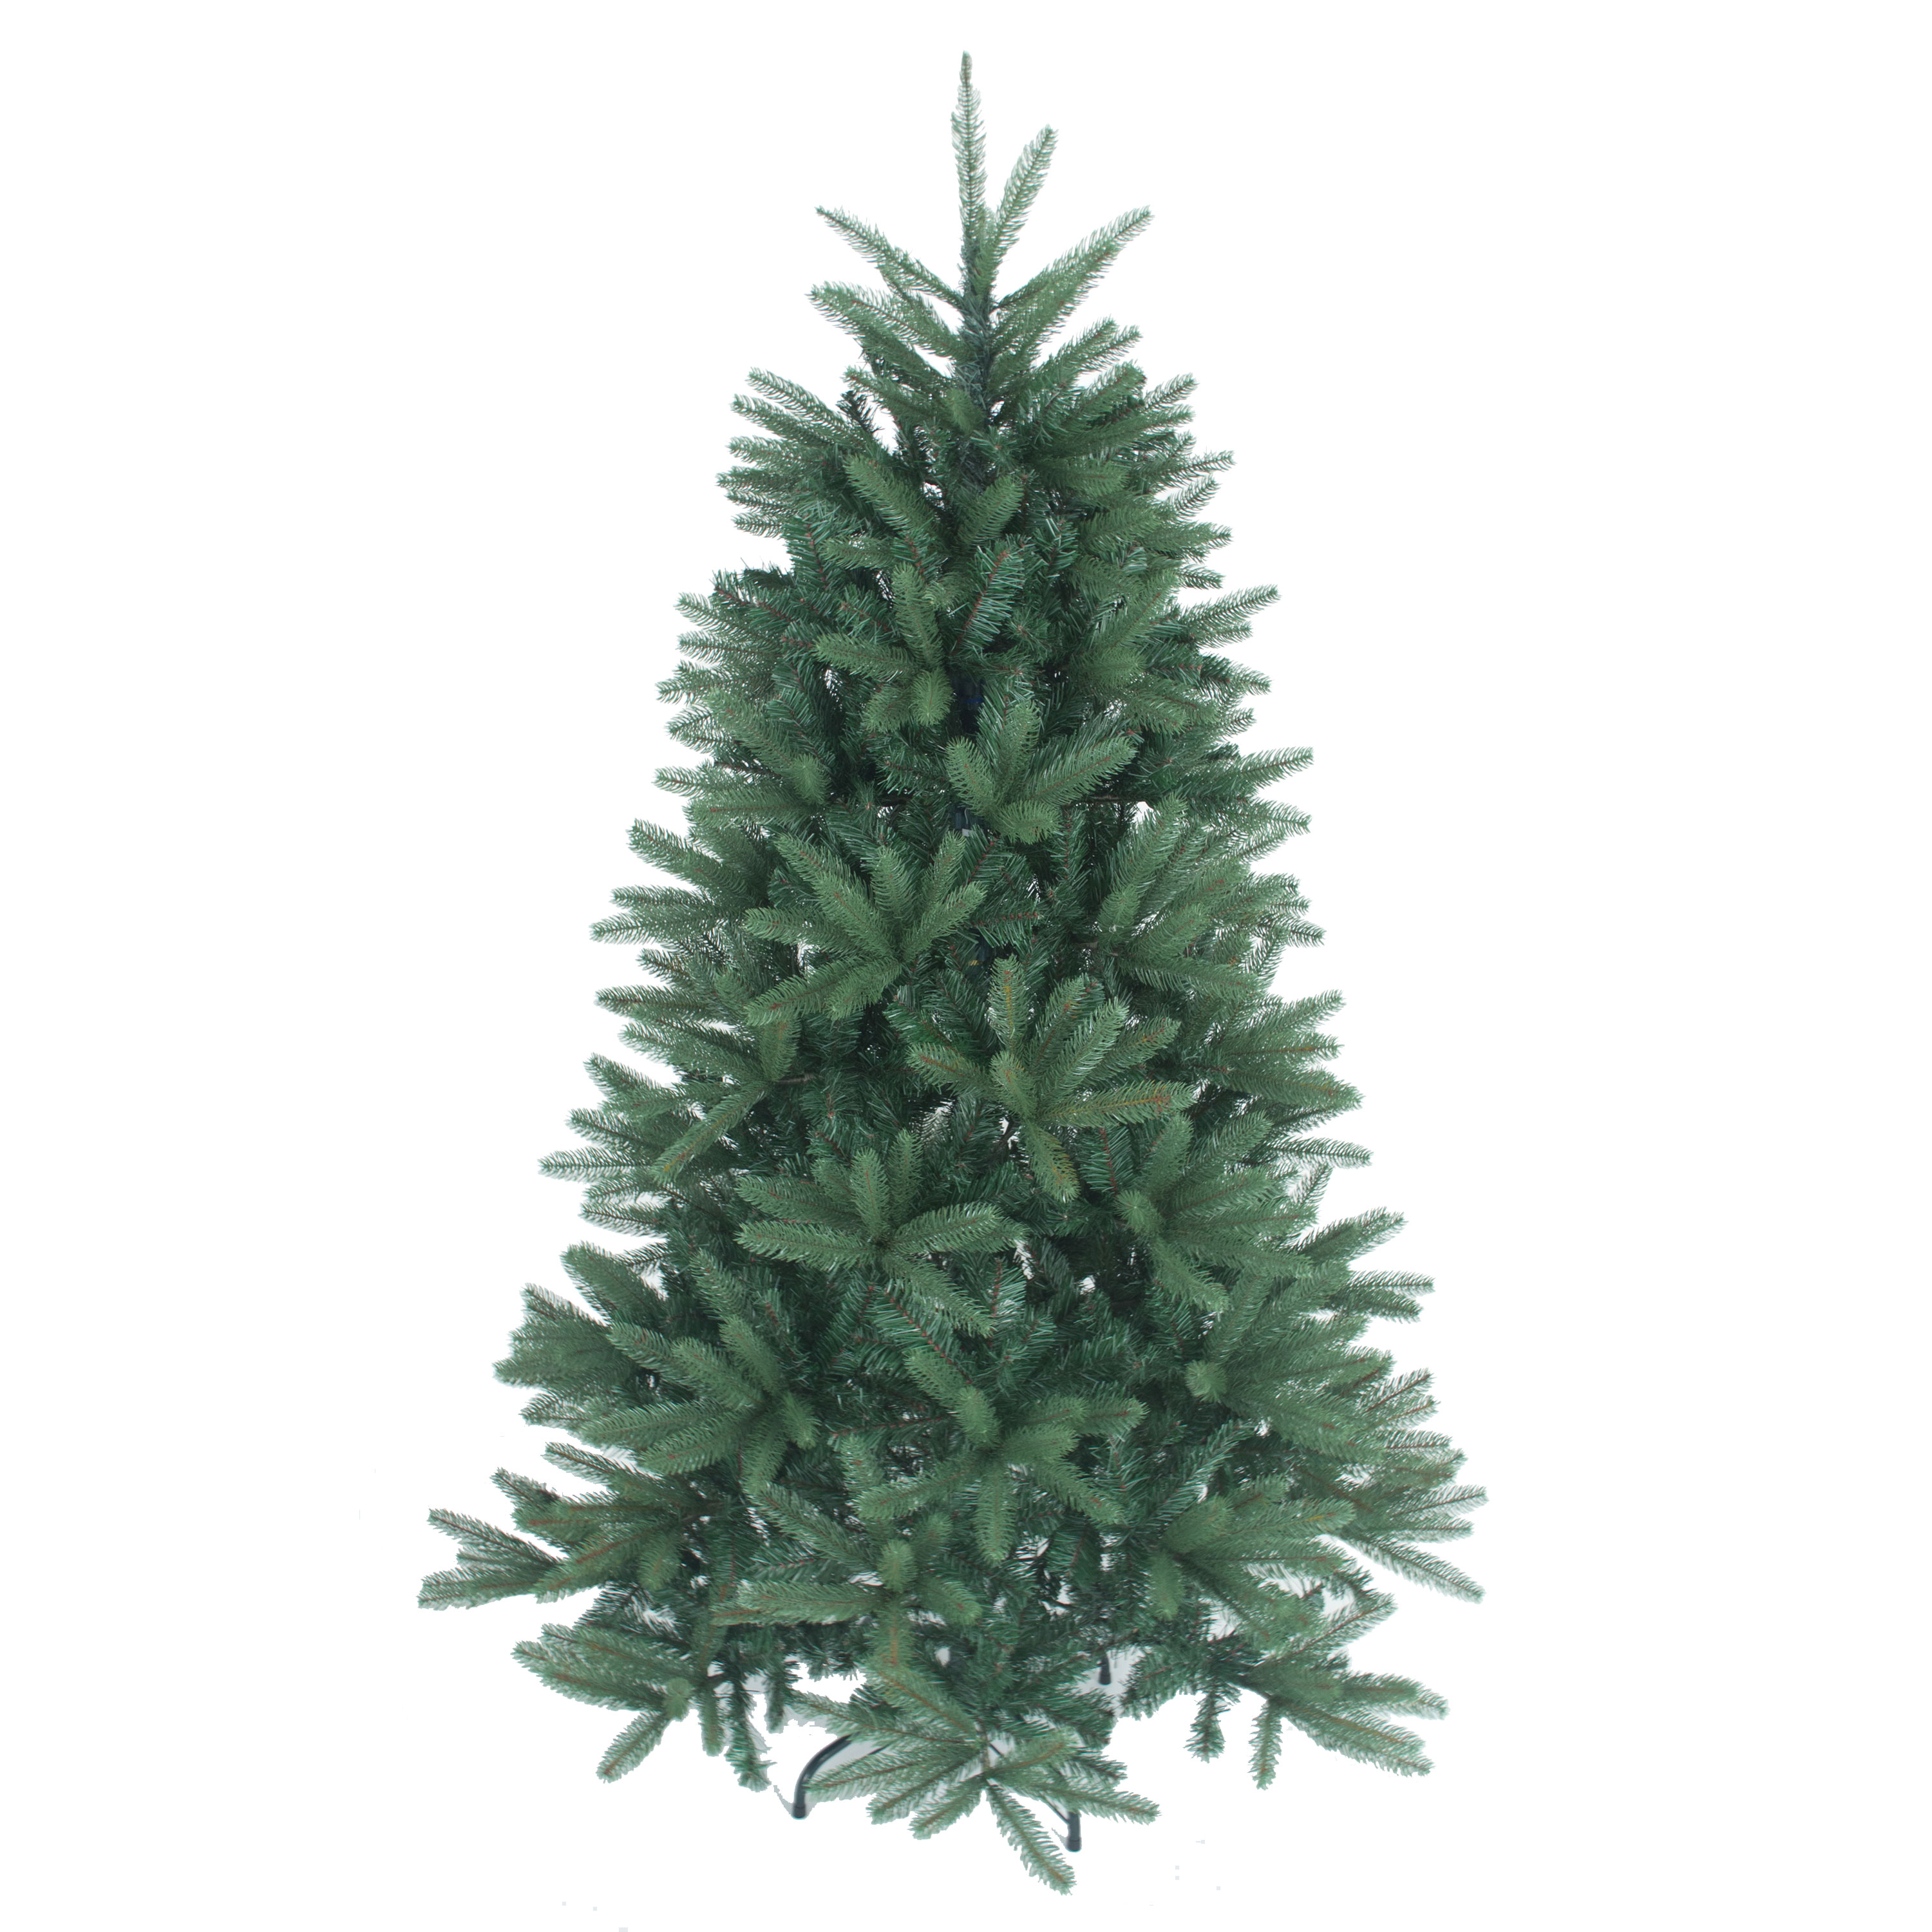 Christmas Trees and Lights 9.75ft Blue/Green Louise Fir Luxury Premium PE Christmas Tree